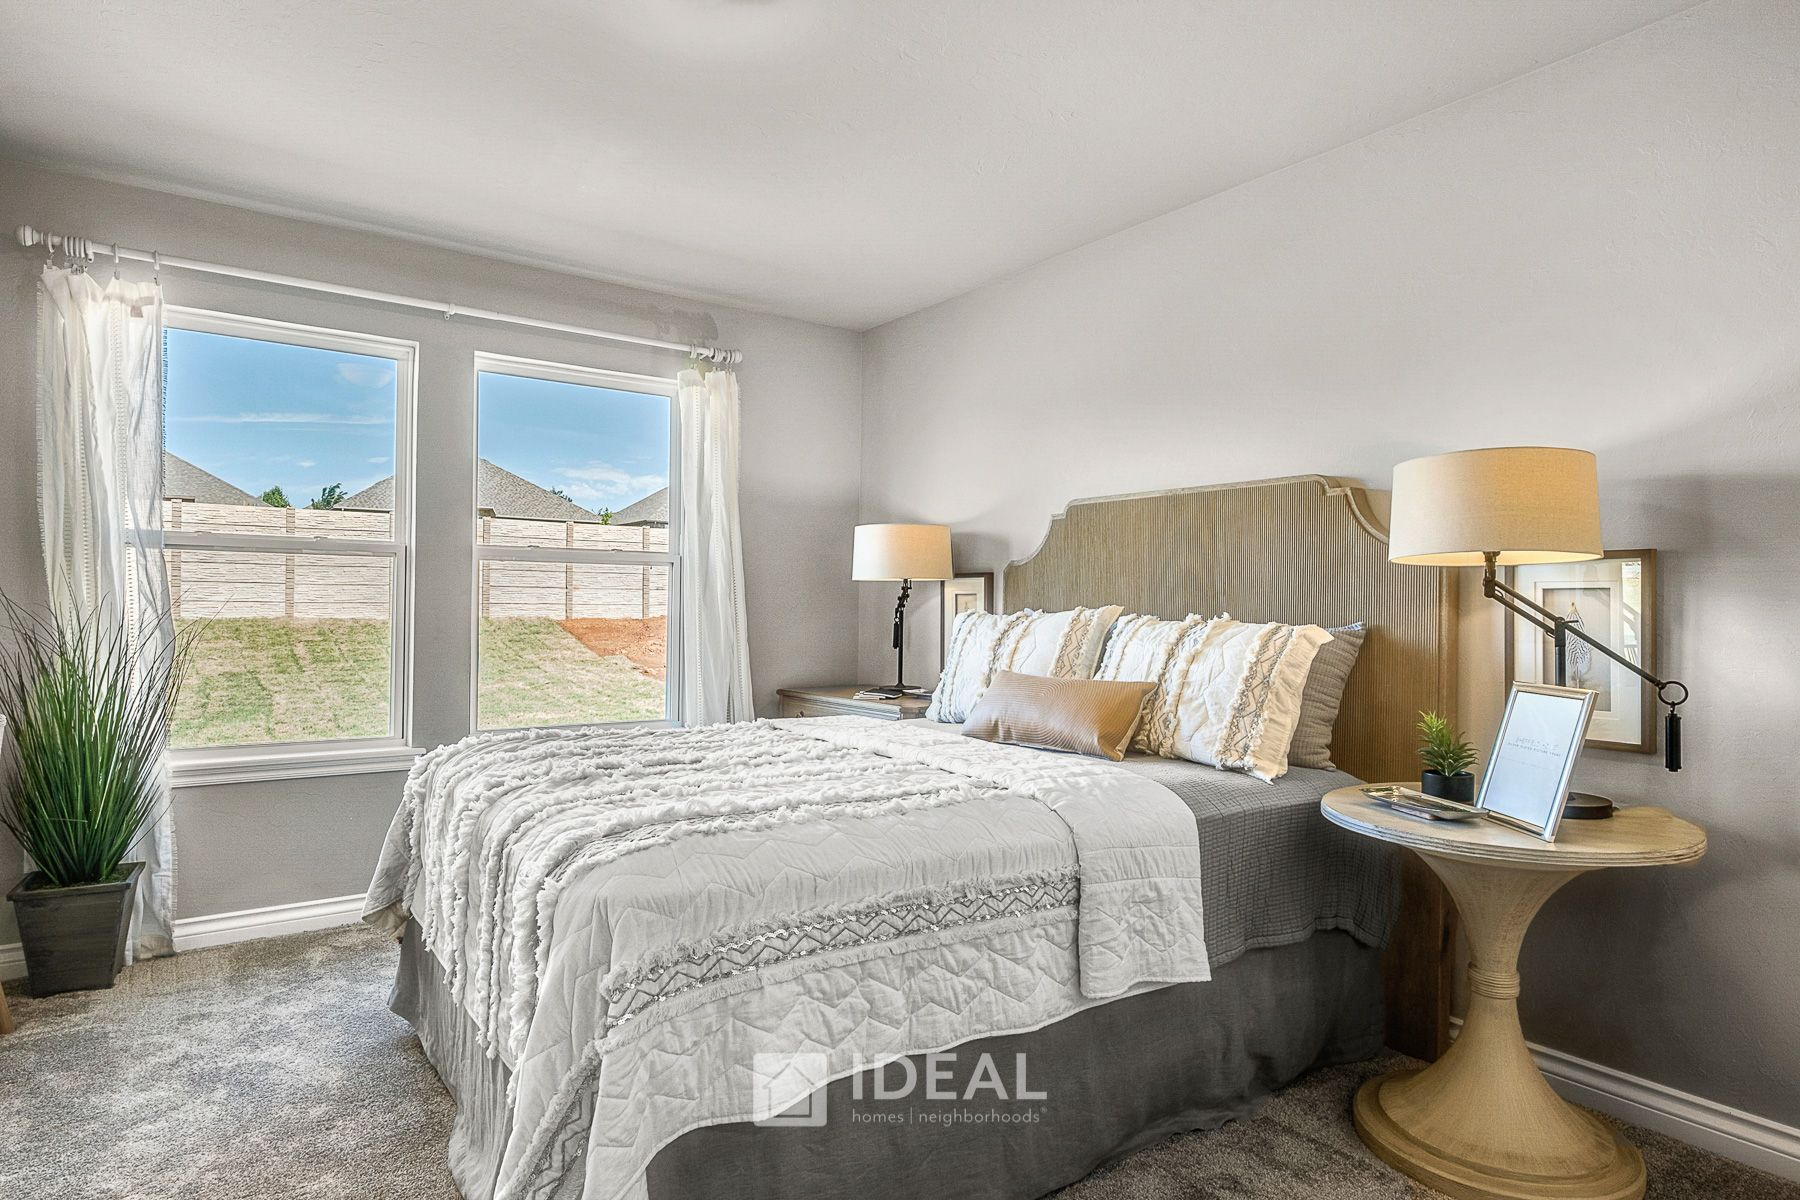 Bedroom featured in the Dawson By Ideal Homes in Oklahoma City, OK